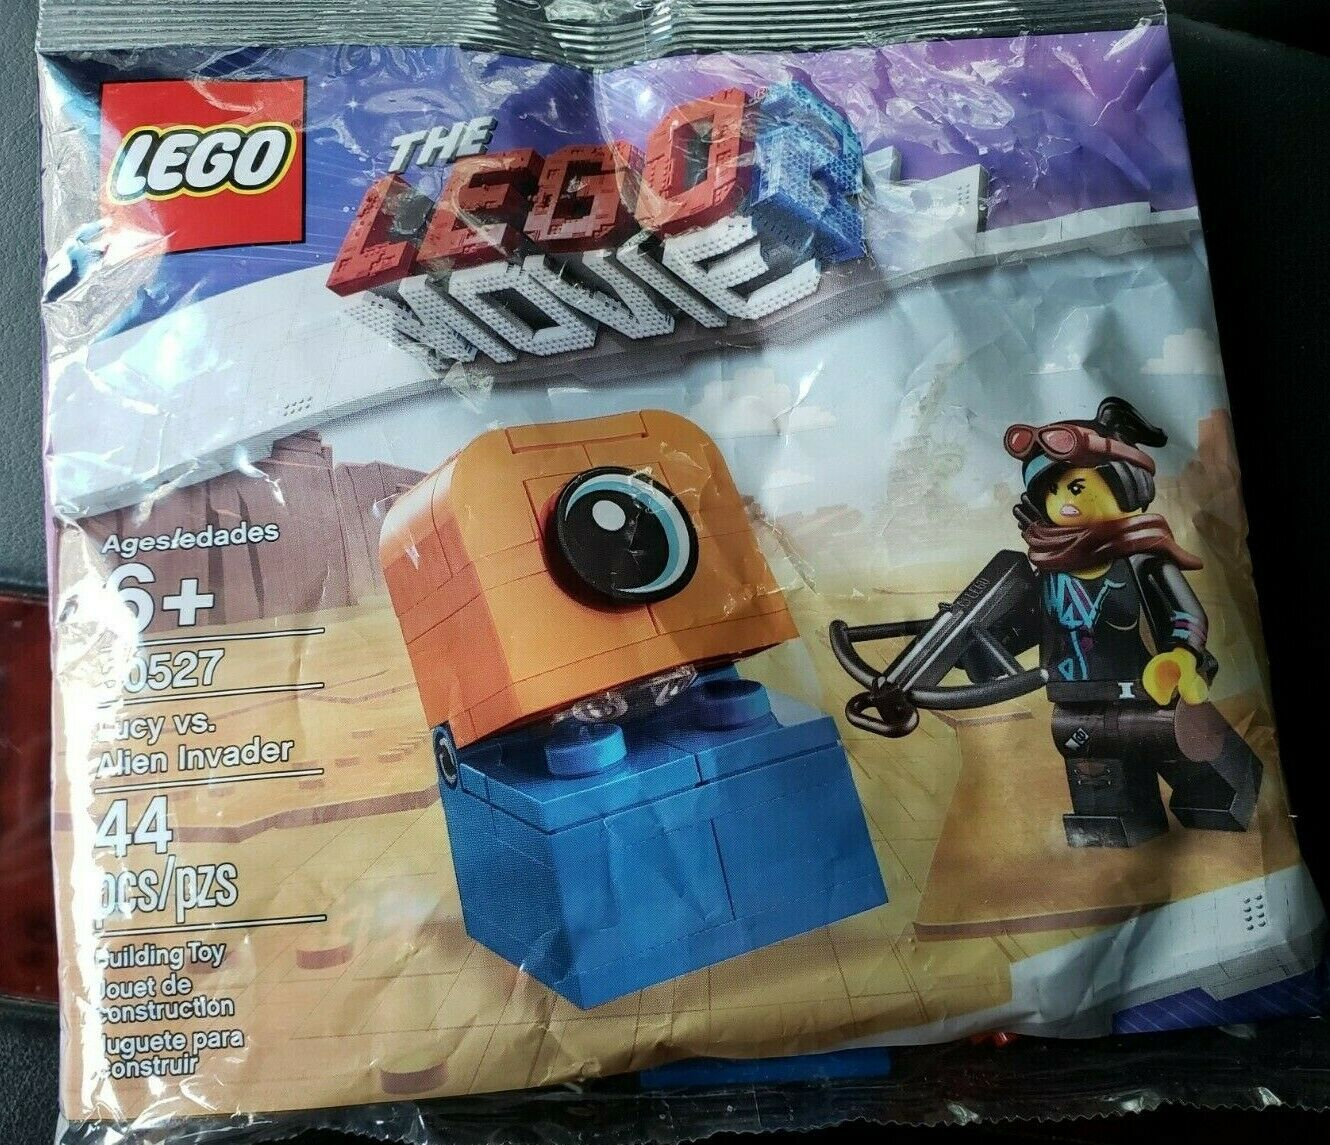 The Lego Movie 2 Lucy vs Alien Invader 30527 Polybag 44pcs Brand New Sealed